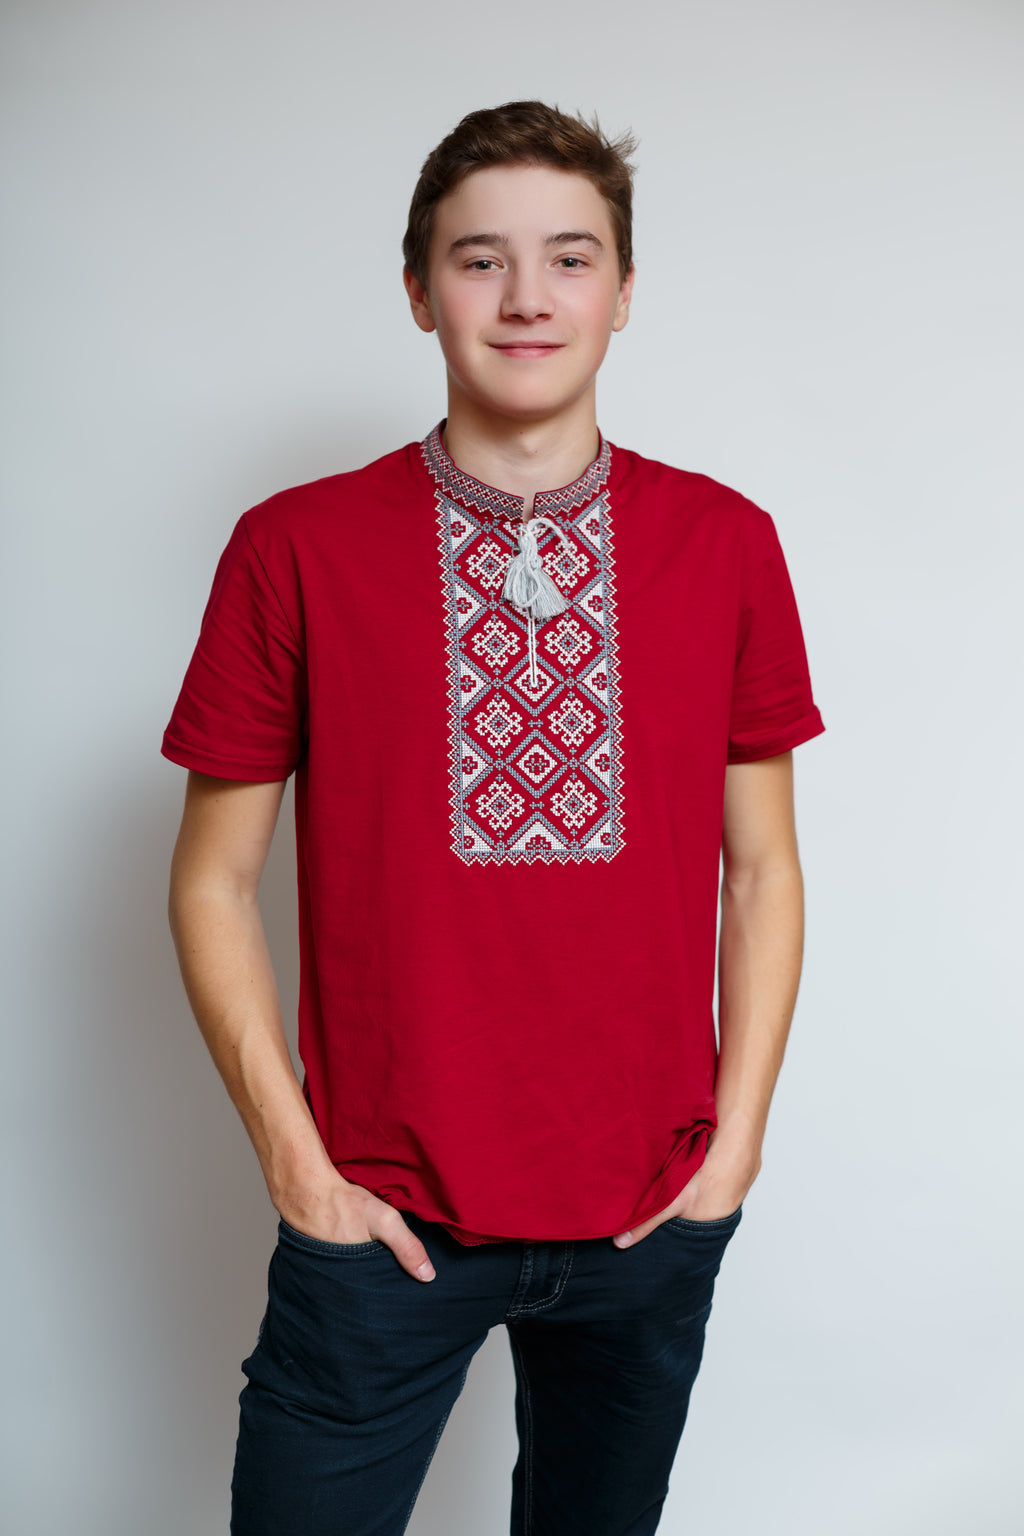 Kosar T-shirt - Burgundy and Grey